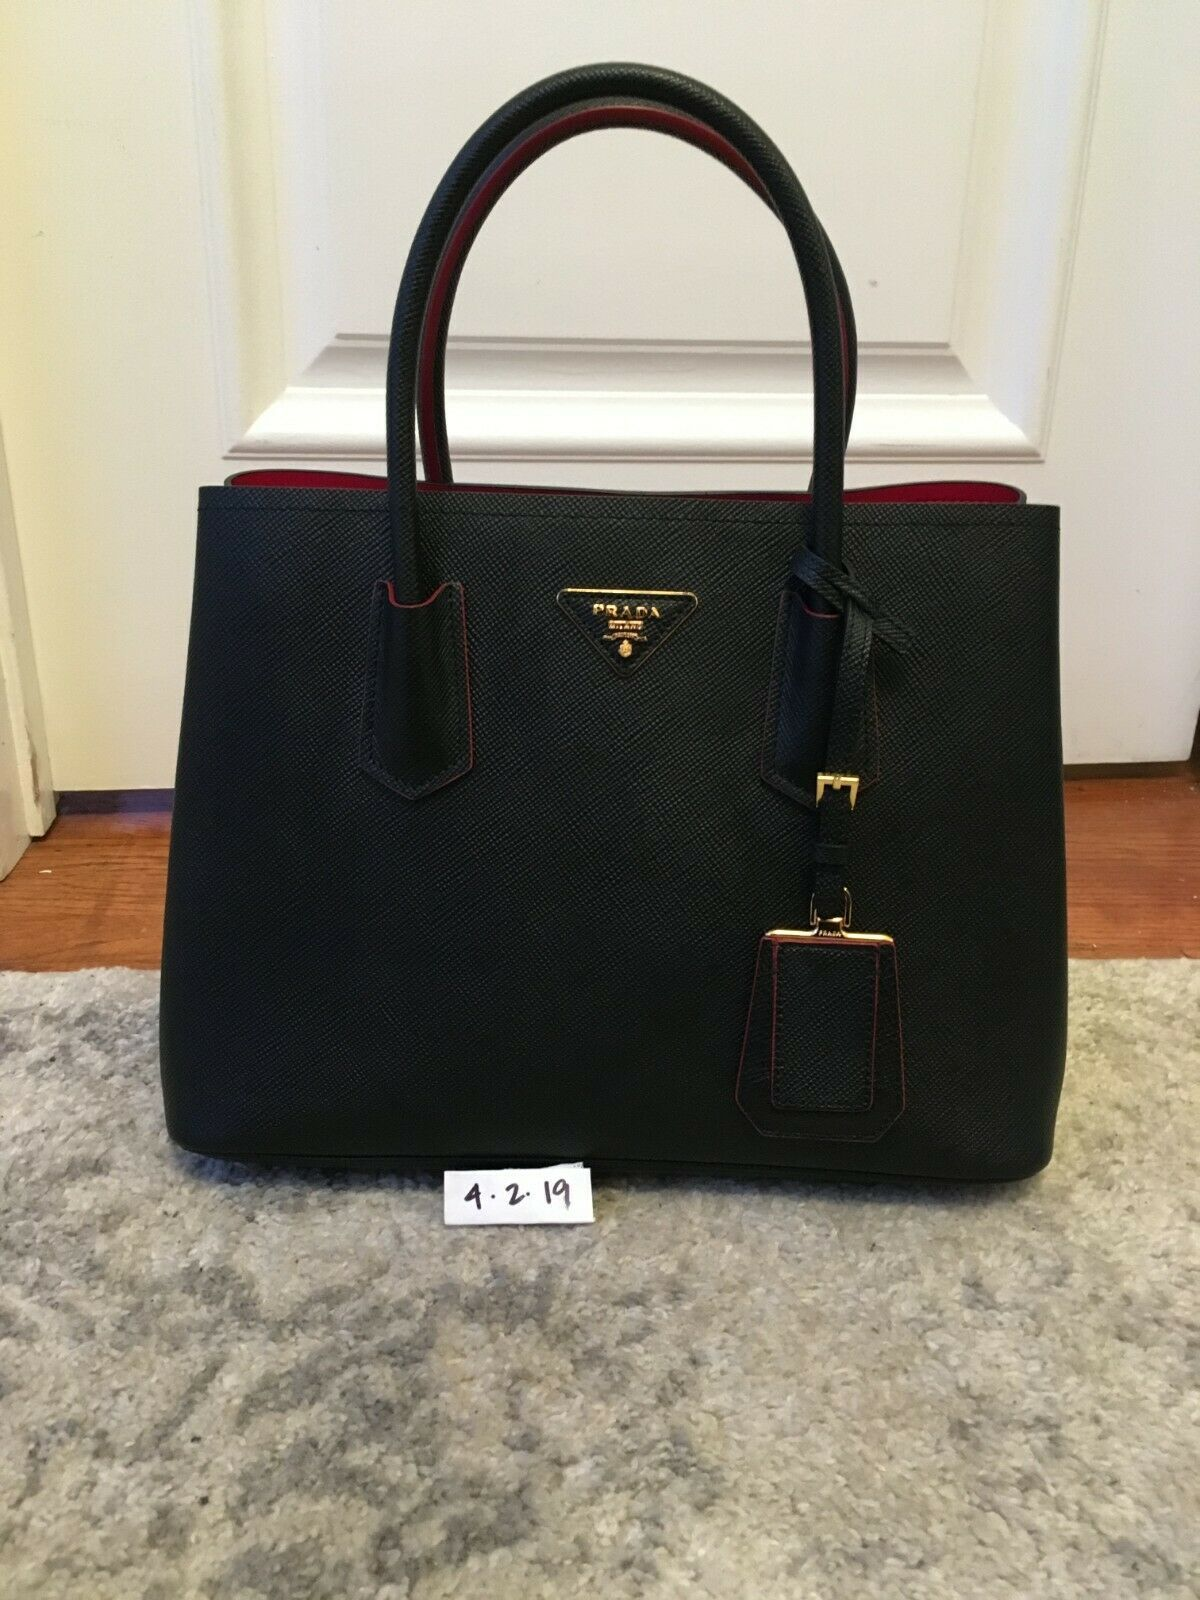 61cd678e6f83 PRADA Saffiano Cuir Small Double Bag Black Red (Nero Fuoco) Excellent  Condition